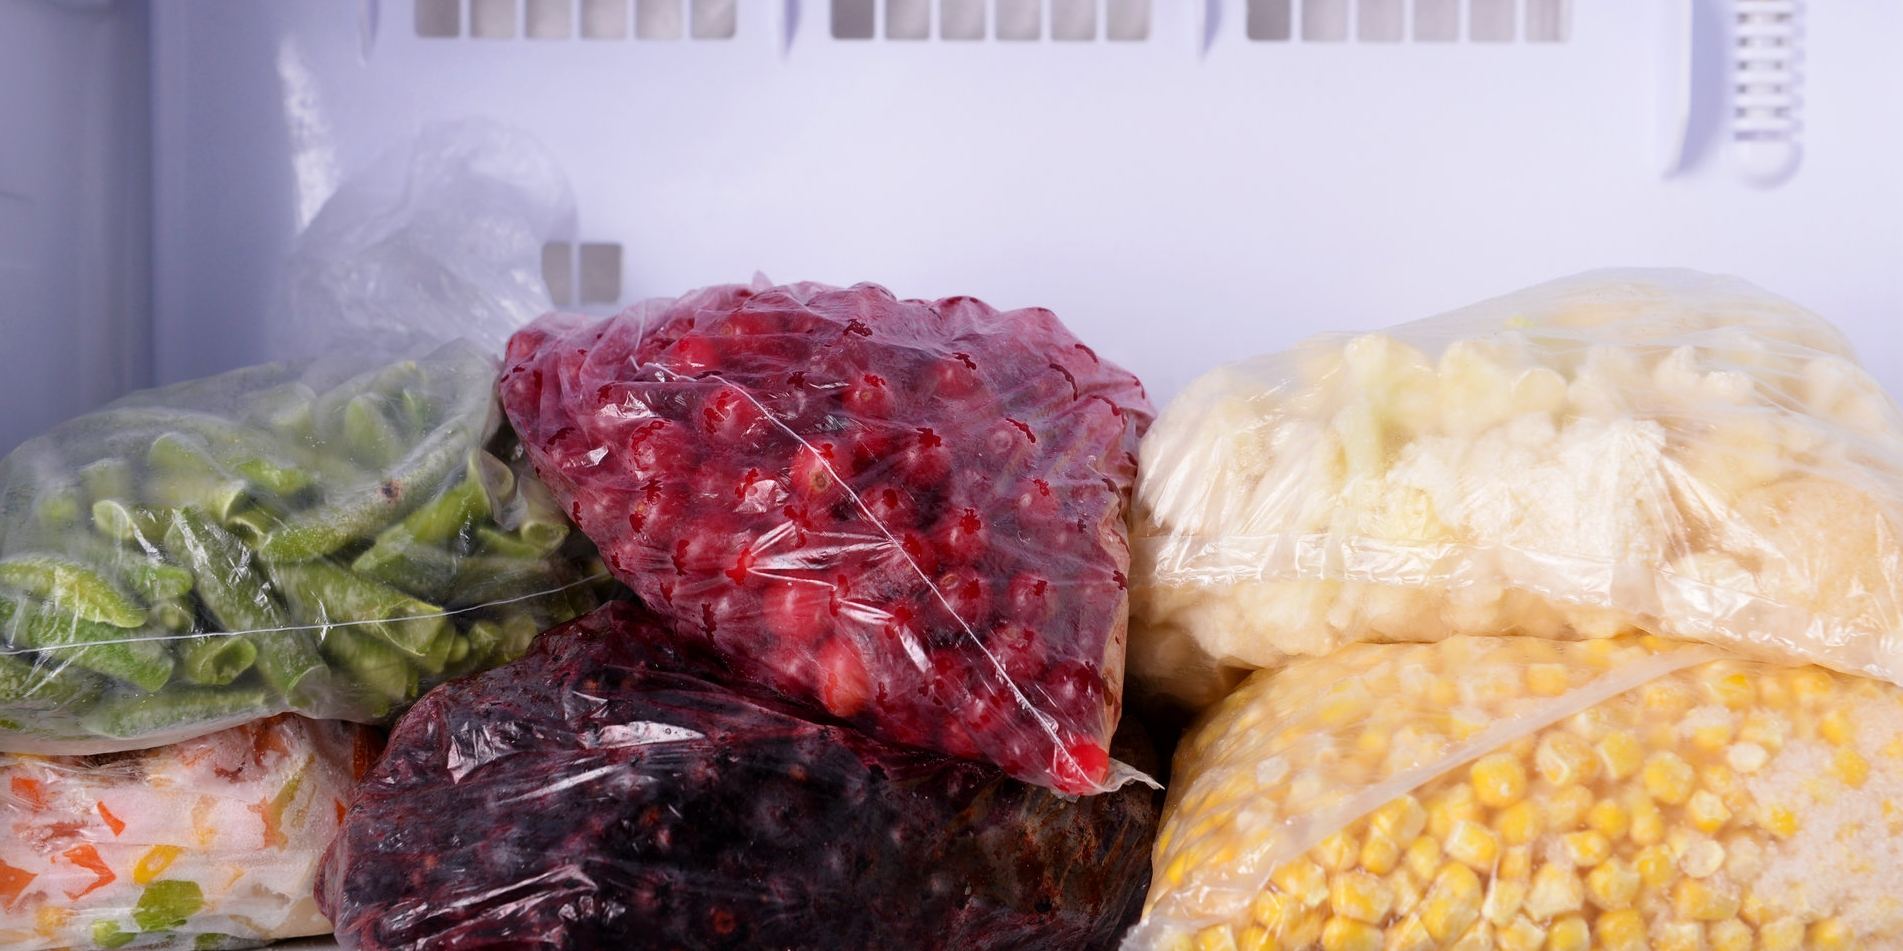 FREEZE - Increased freezer use can save you up to £270 per year on your food bills. Who would have thawed?